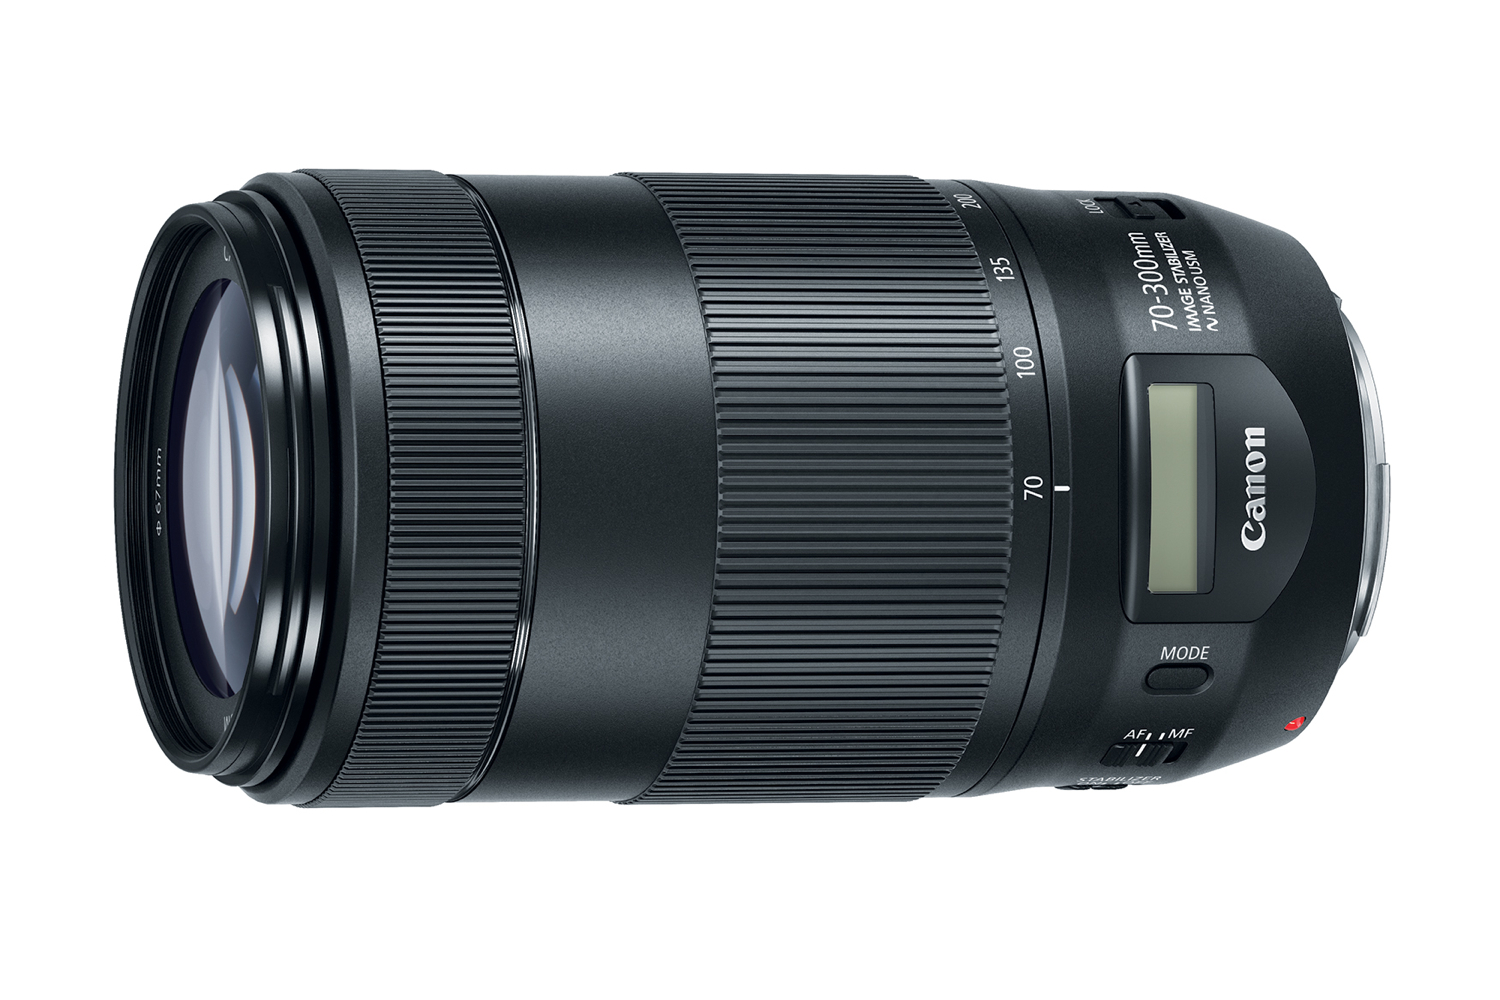 canon adds advanced features to budget 70 300mm telephoto lens. Black Bedroom Furniture Sets. Home Design Ideas